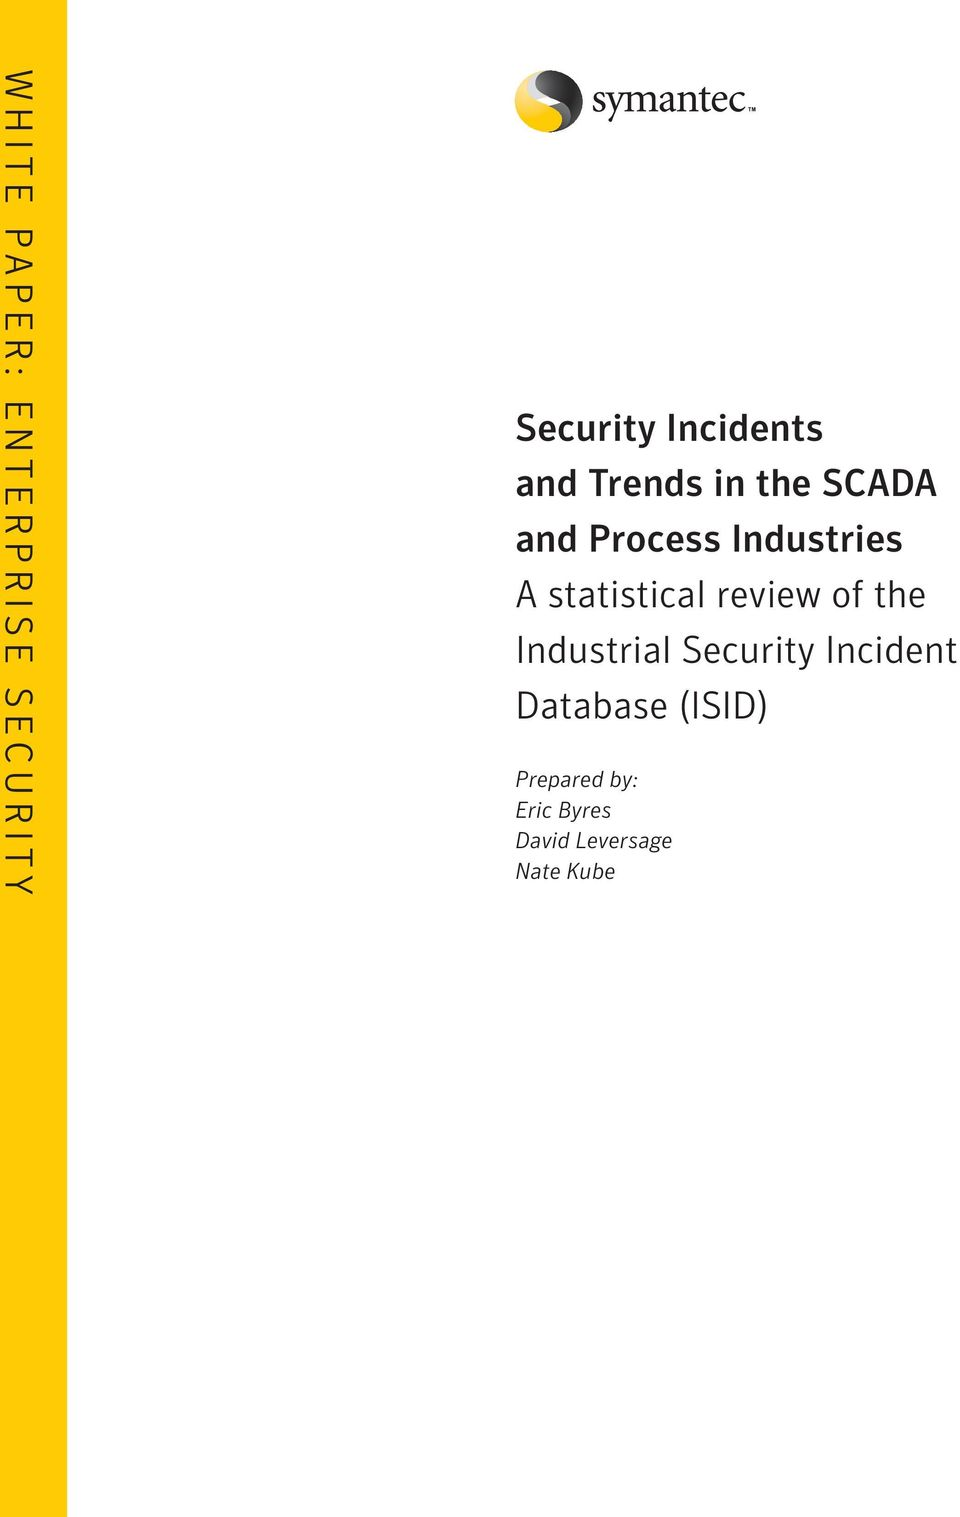 statistical review of the Industrial Security Incident